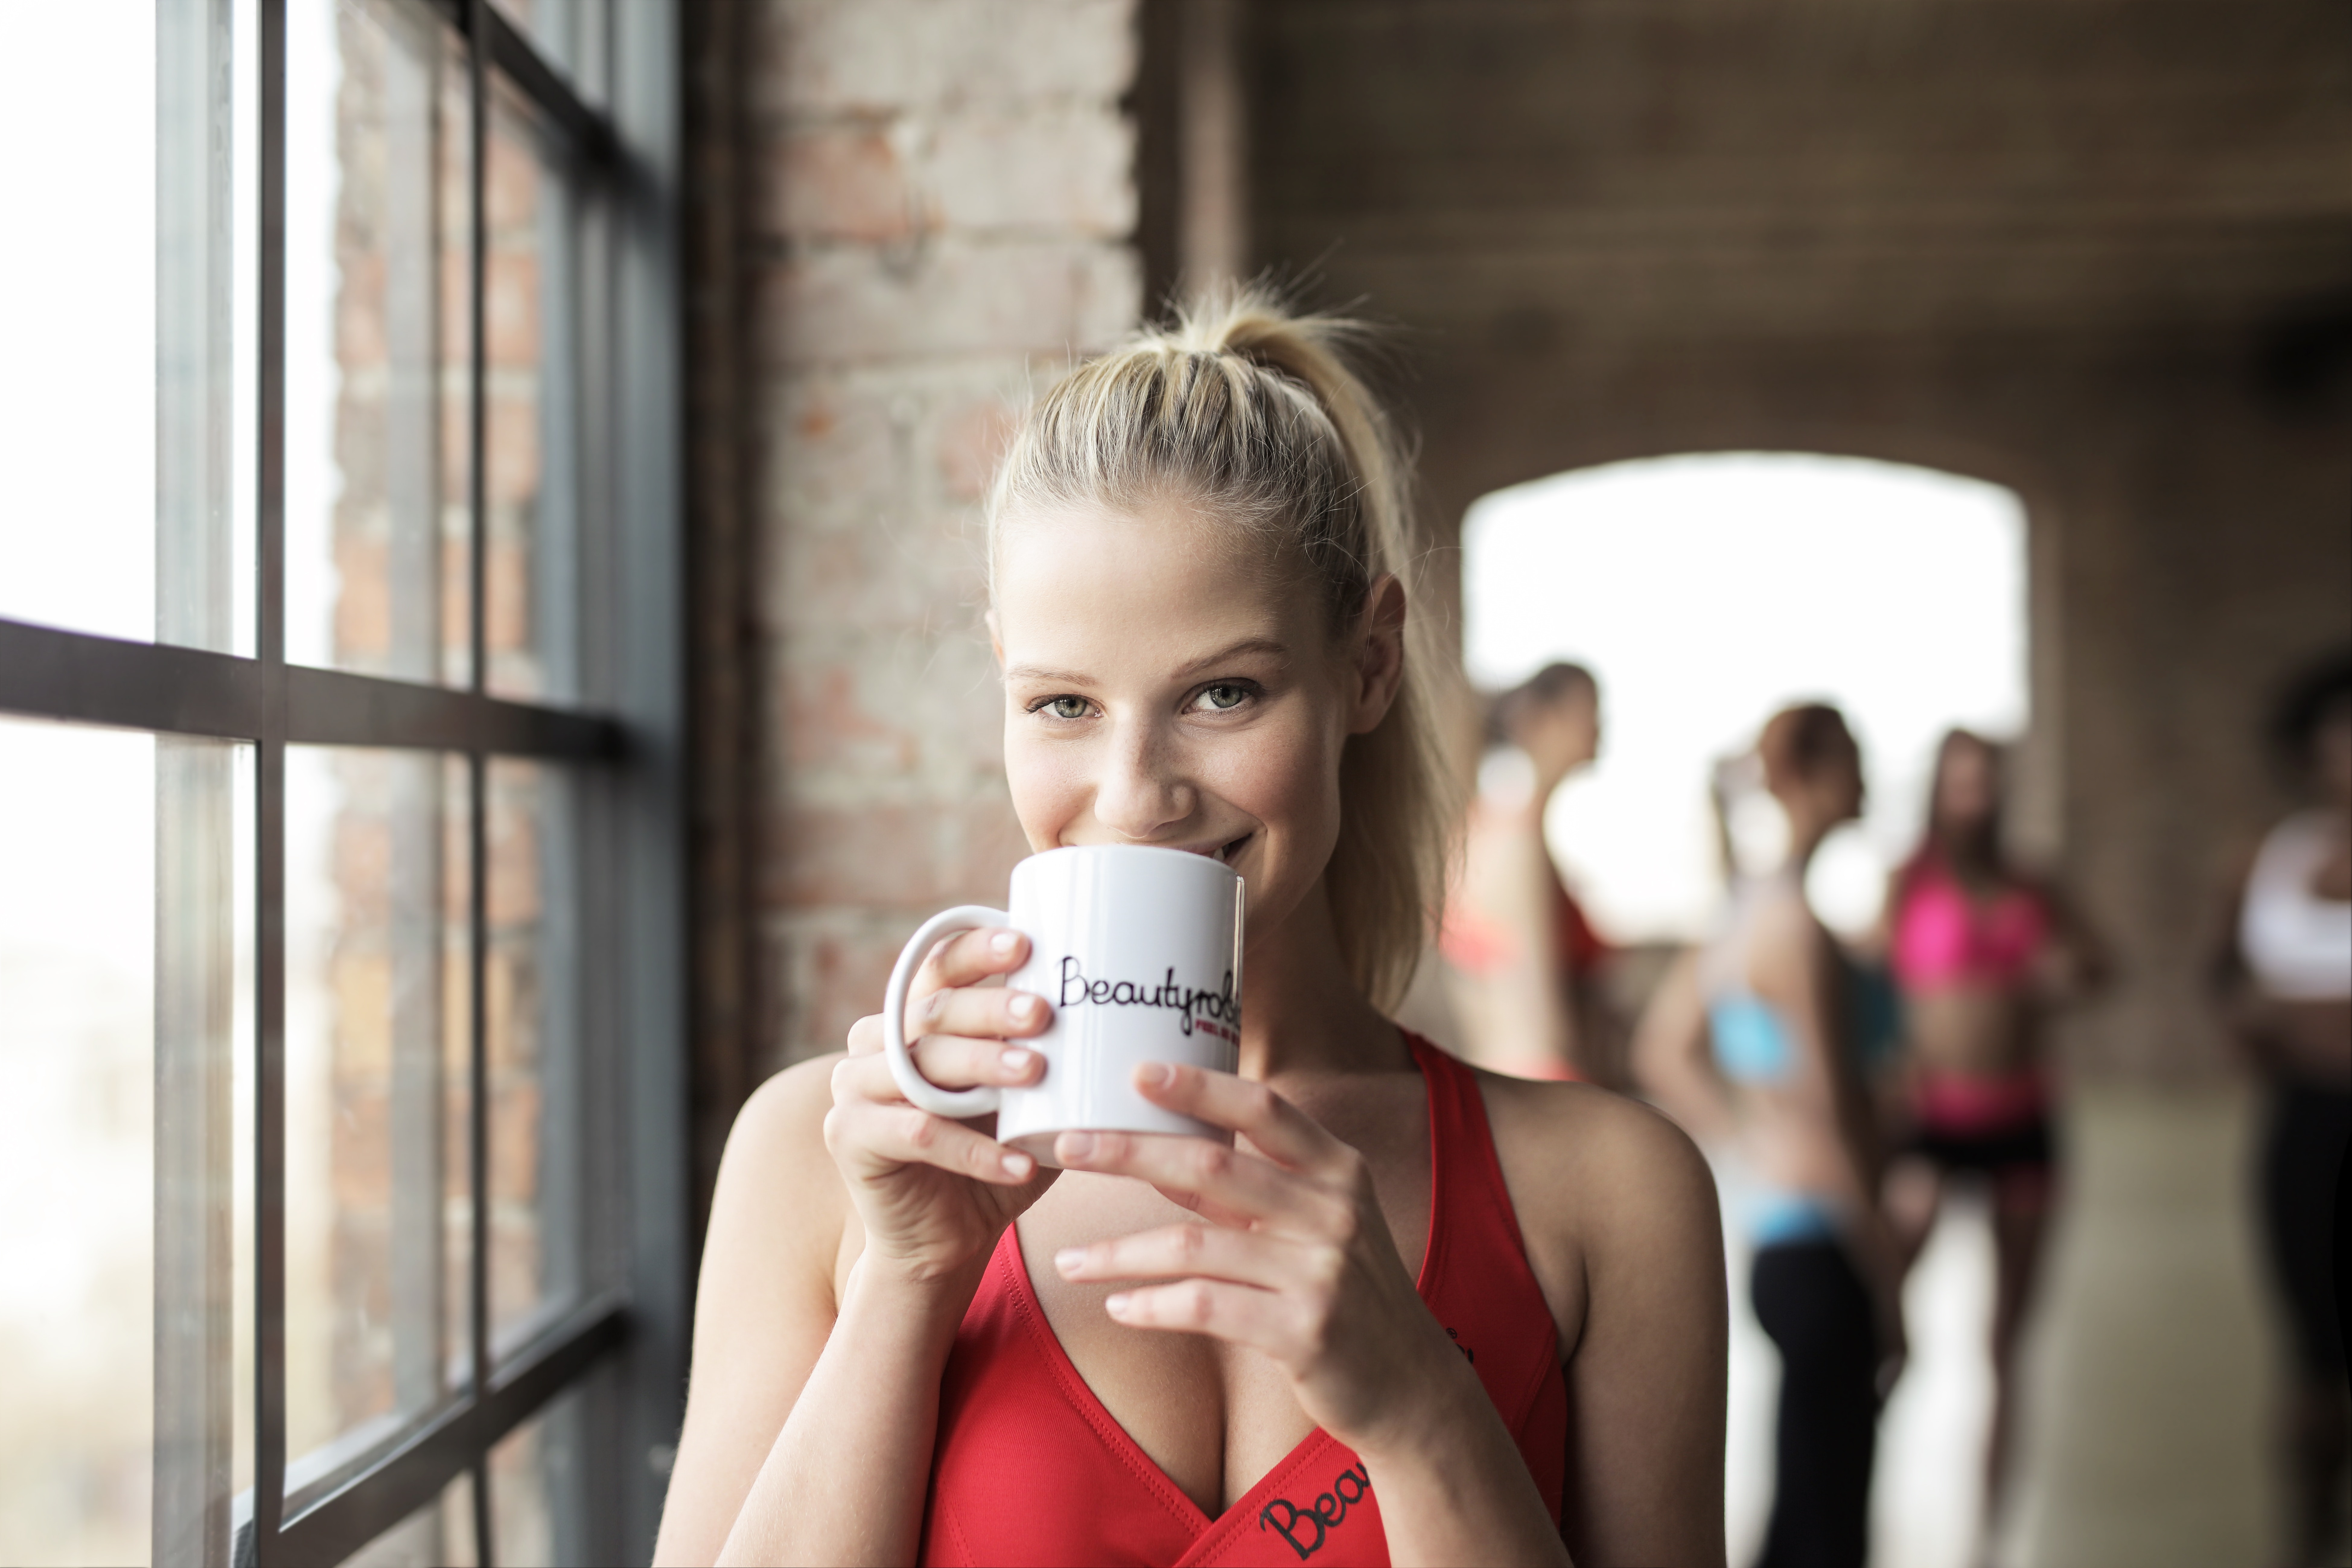 Woman in red scoop-neck tank top holding white mug photo